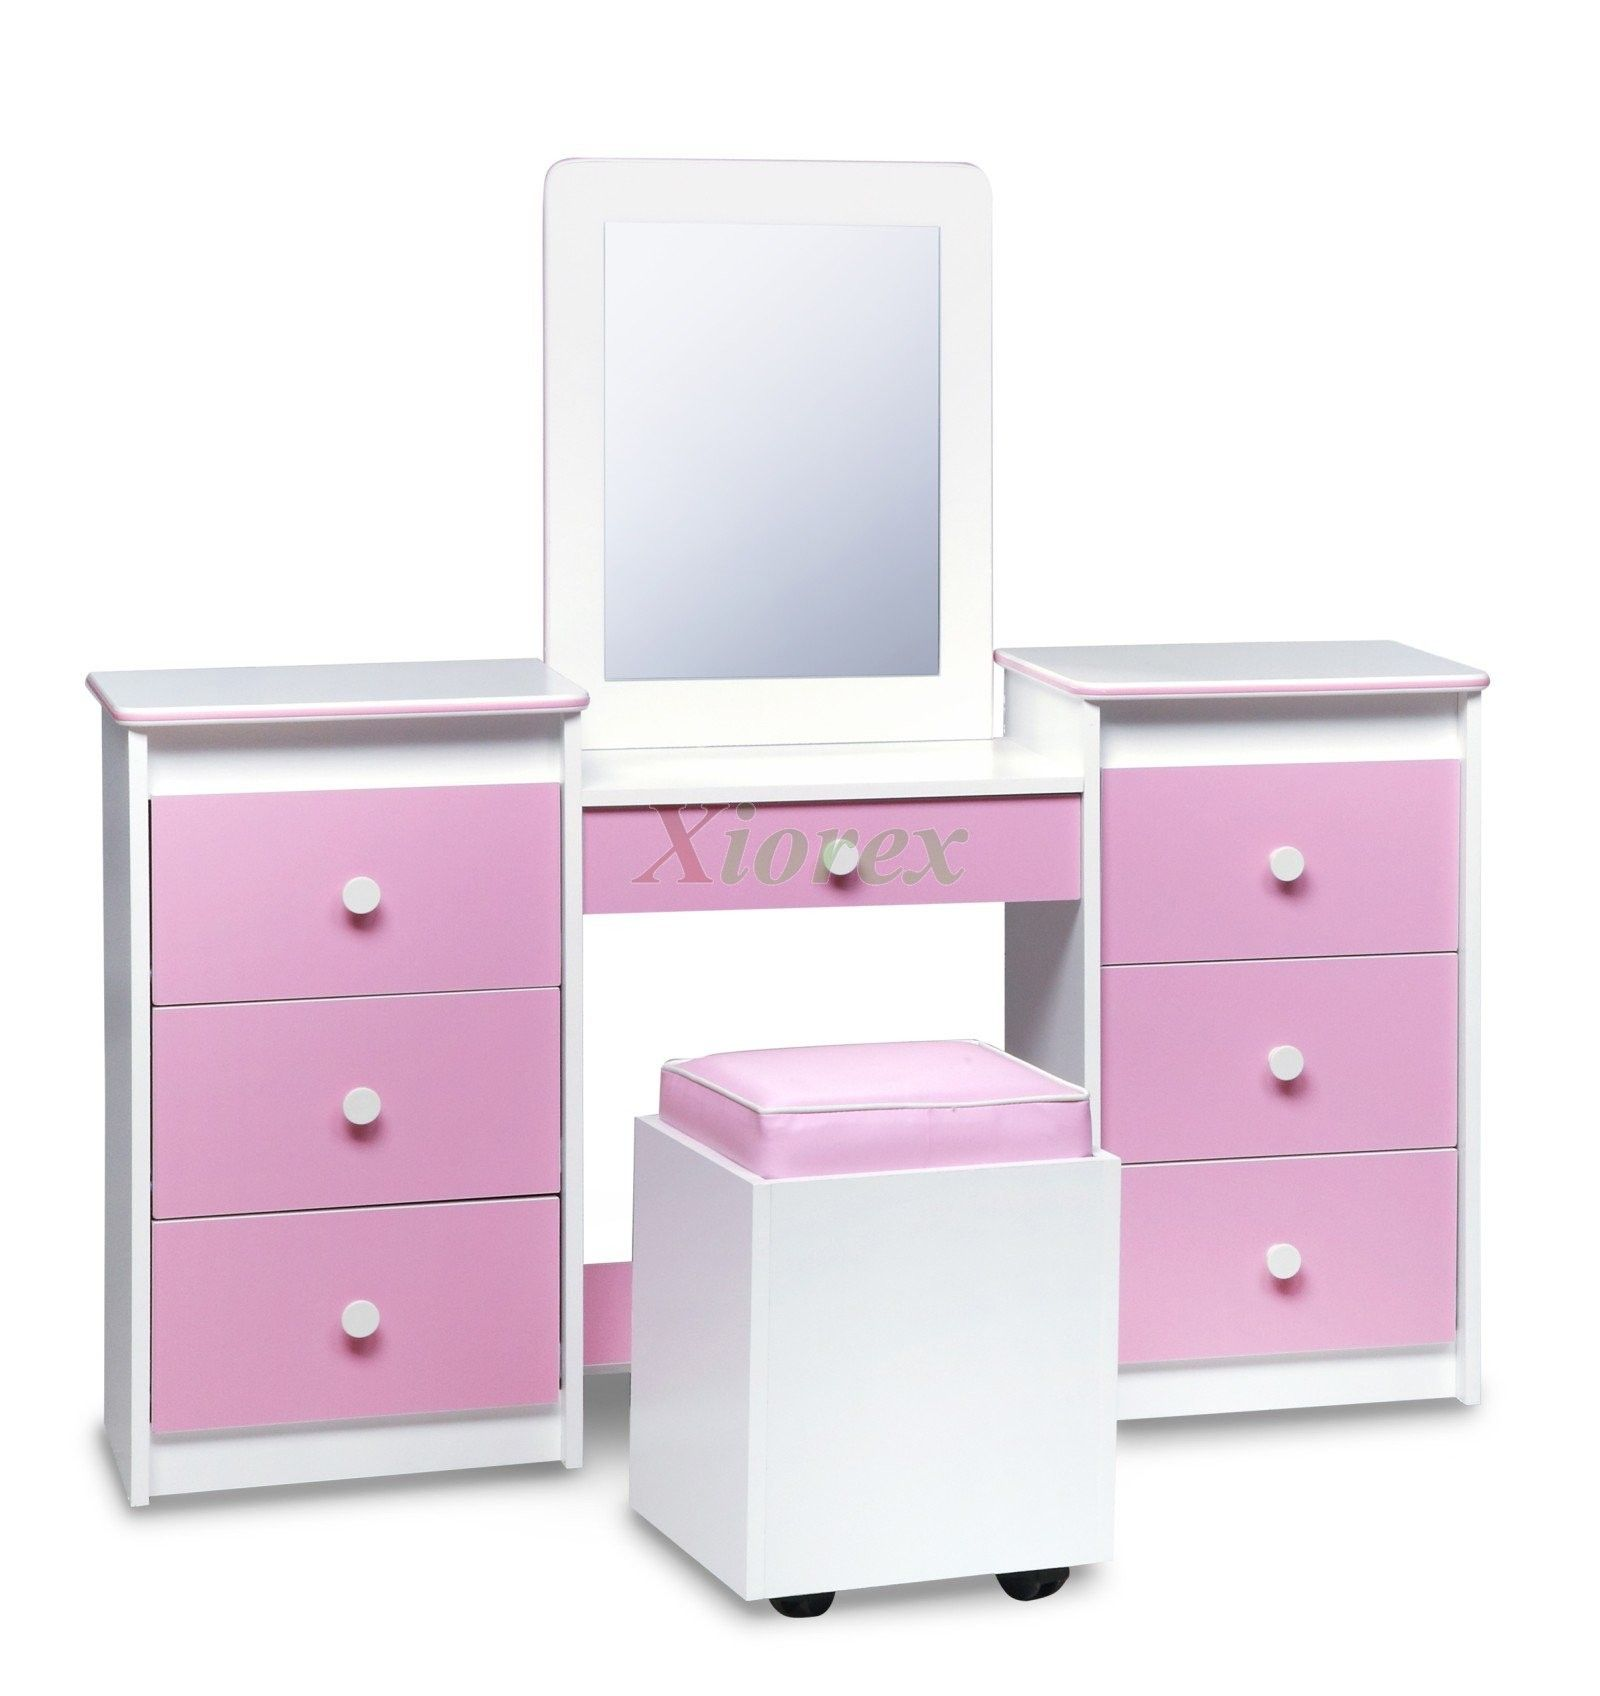 Kid vanity table with mirror google search dress up room kid vanity table with mirror google search geotapseo Choice Image